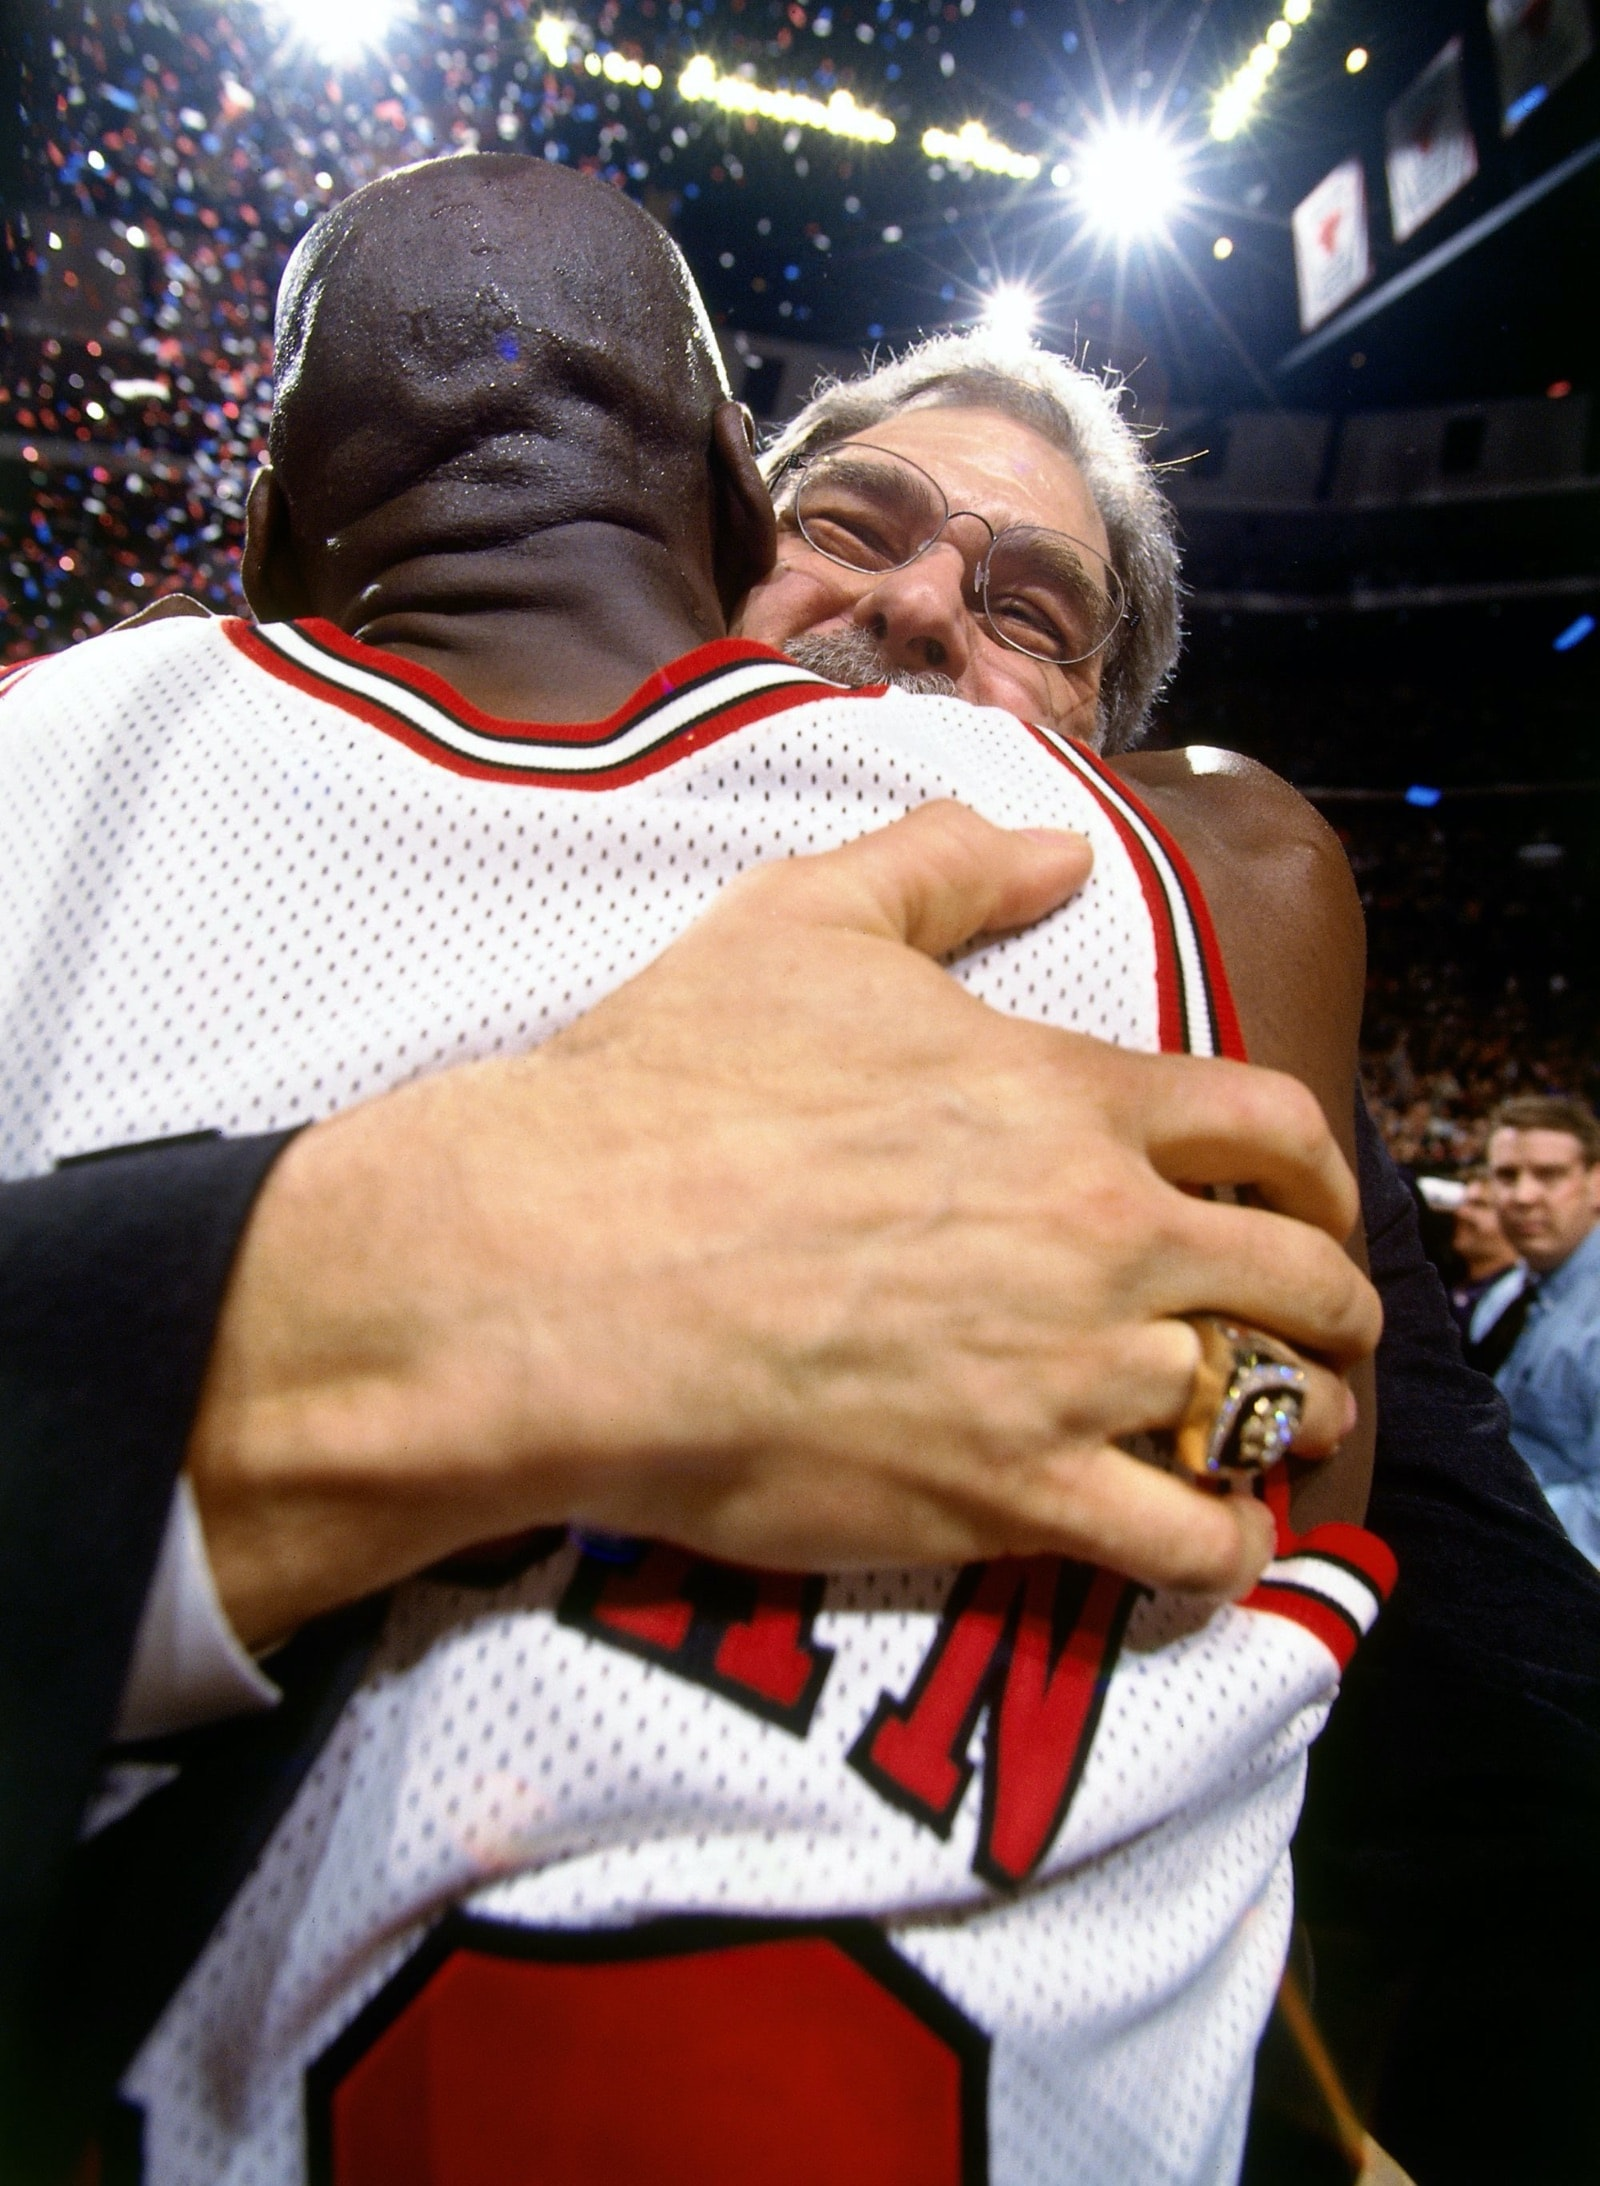 Phil Jackson and Michael Jordan hug it out after winning the championship